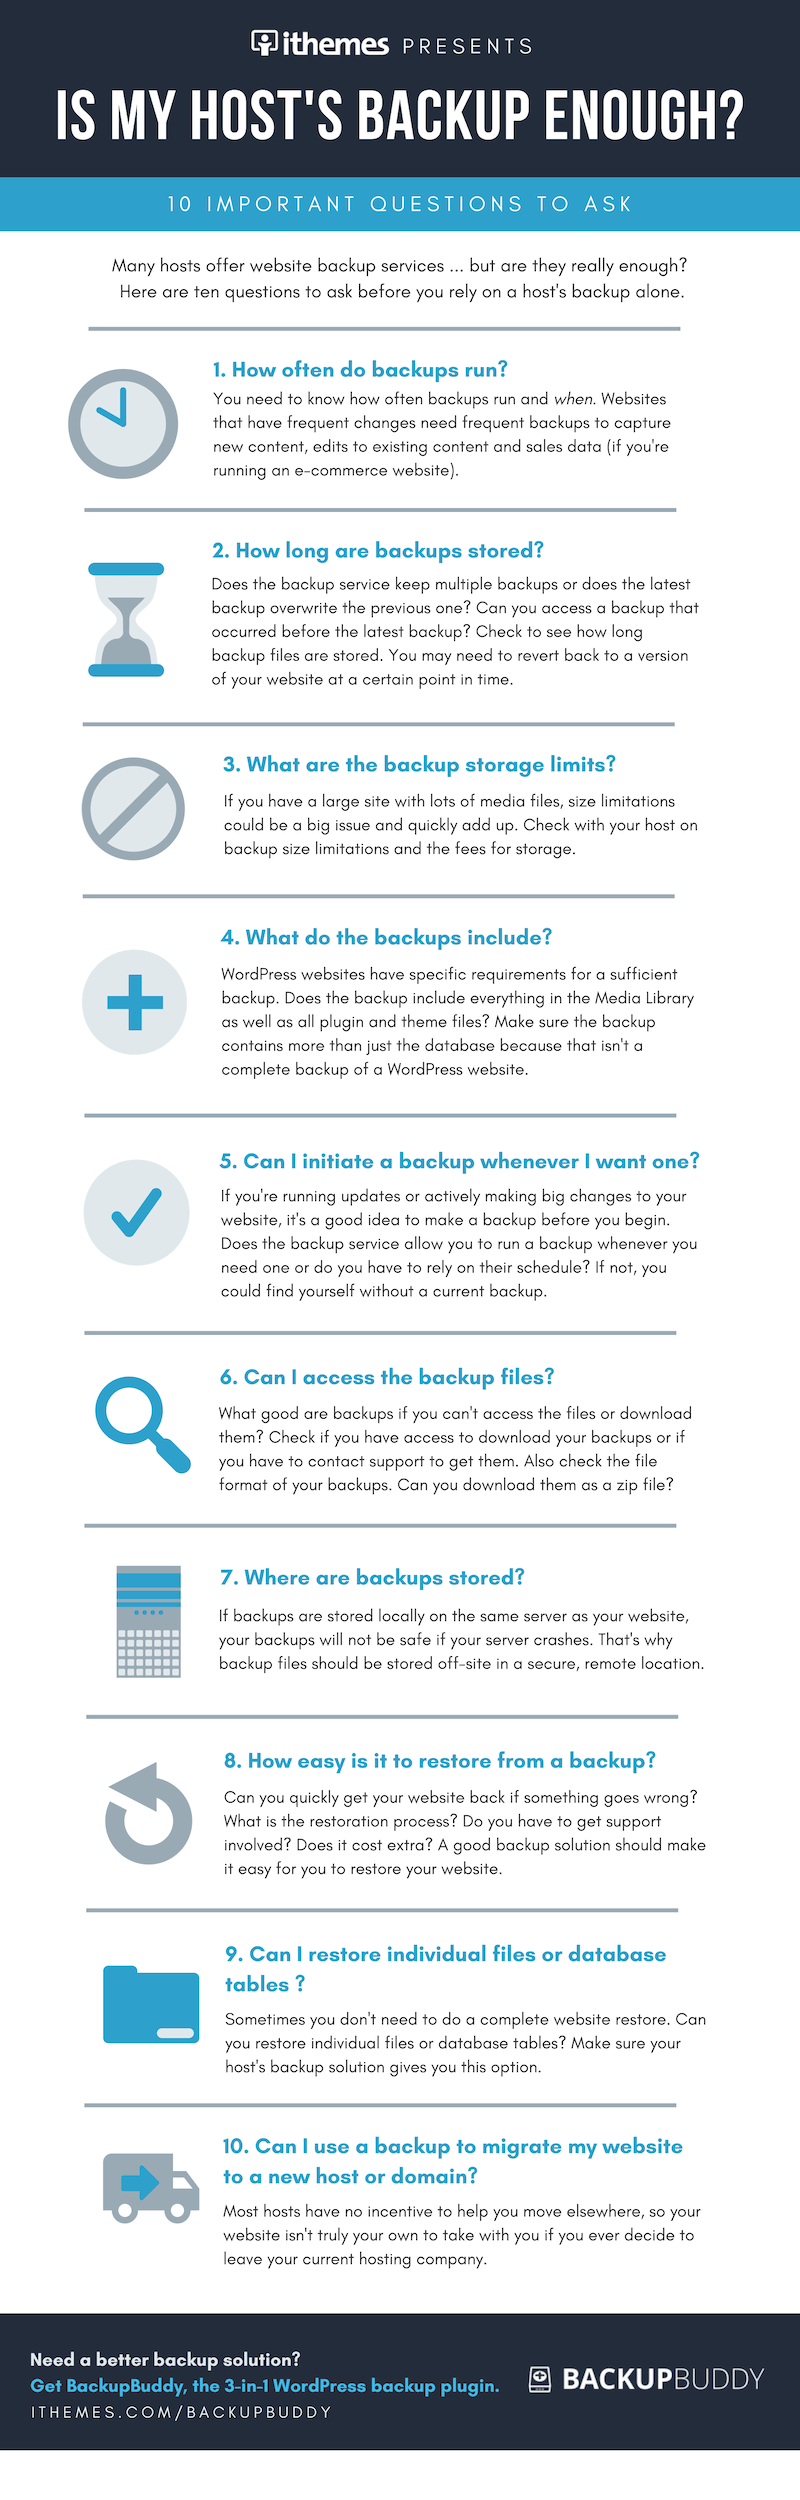 Is My Hosts Backup Enough? Infographic